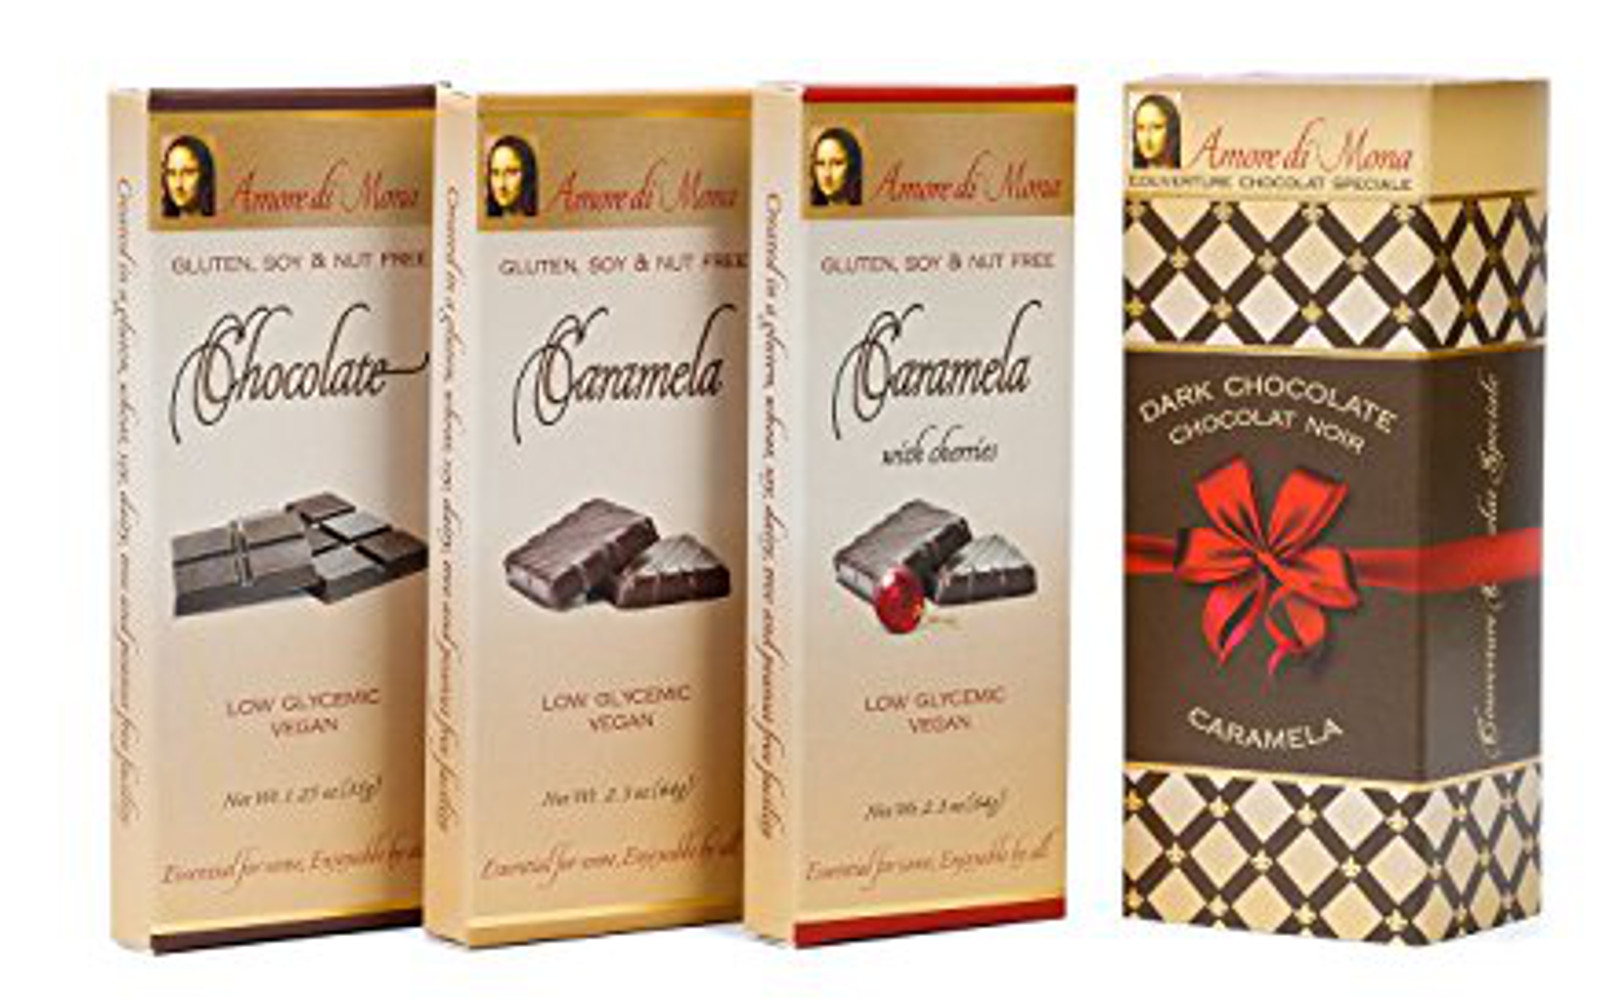 Classico Collection-Amore Di Mona Luxury Dark Chocolate and Caramela Box: Vegan, No Gluten, Peanuts, Tree Nuts, Milk, Sesame or Soy. Vegan, All-natural, Non-GMO, Low Glycemic